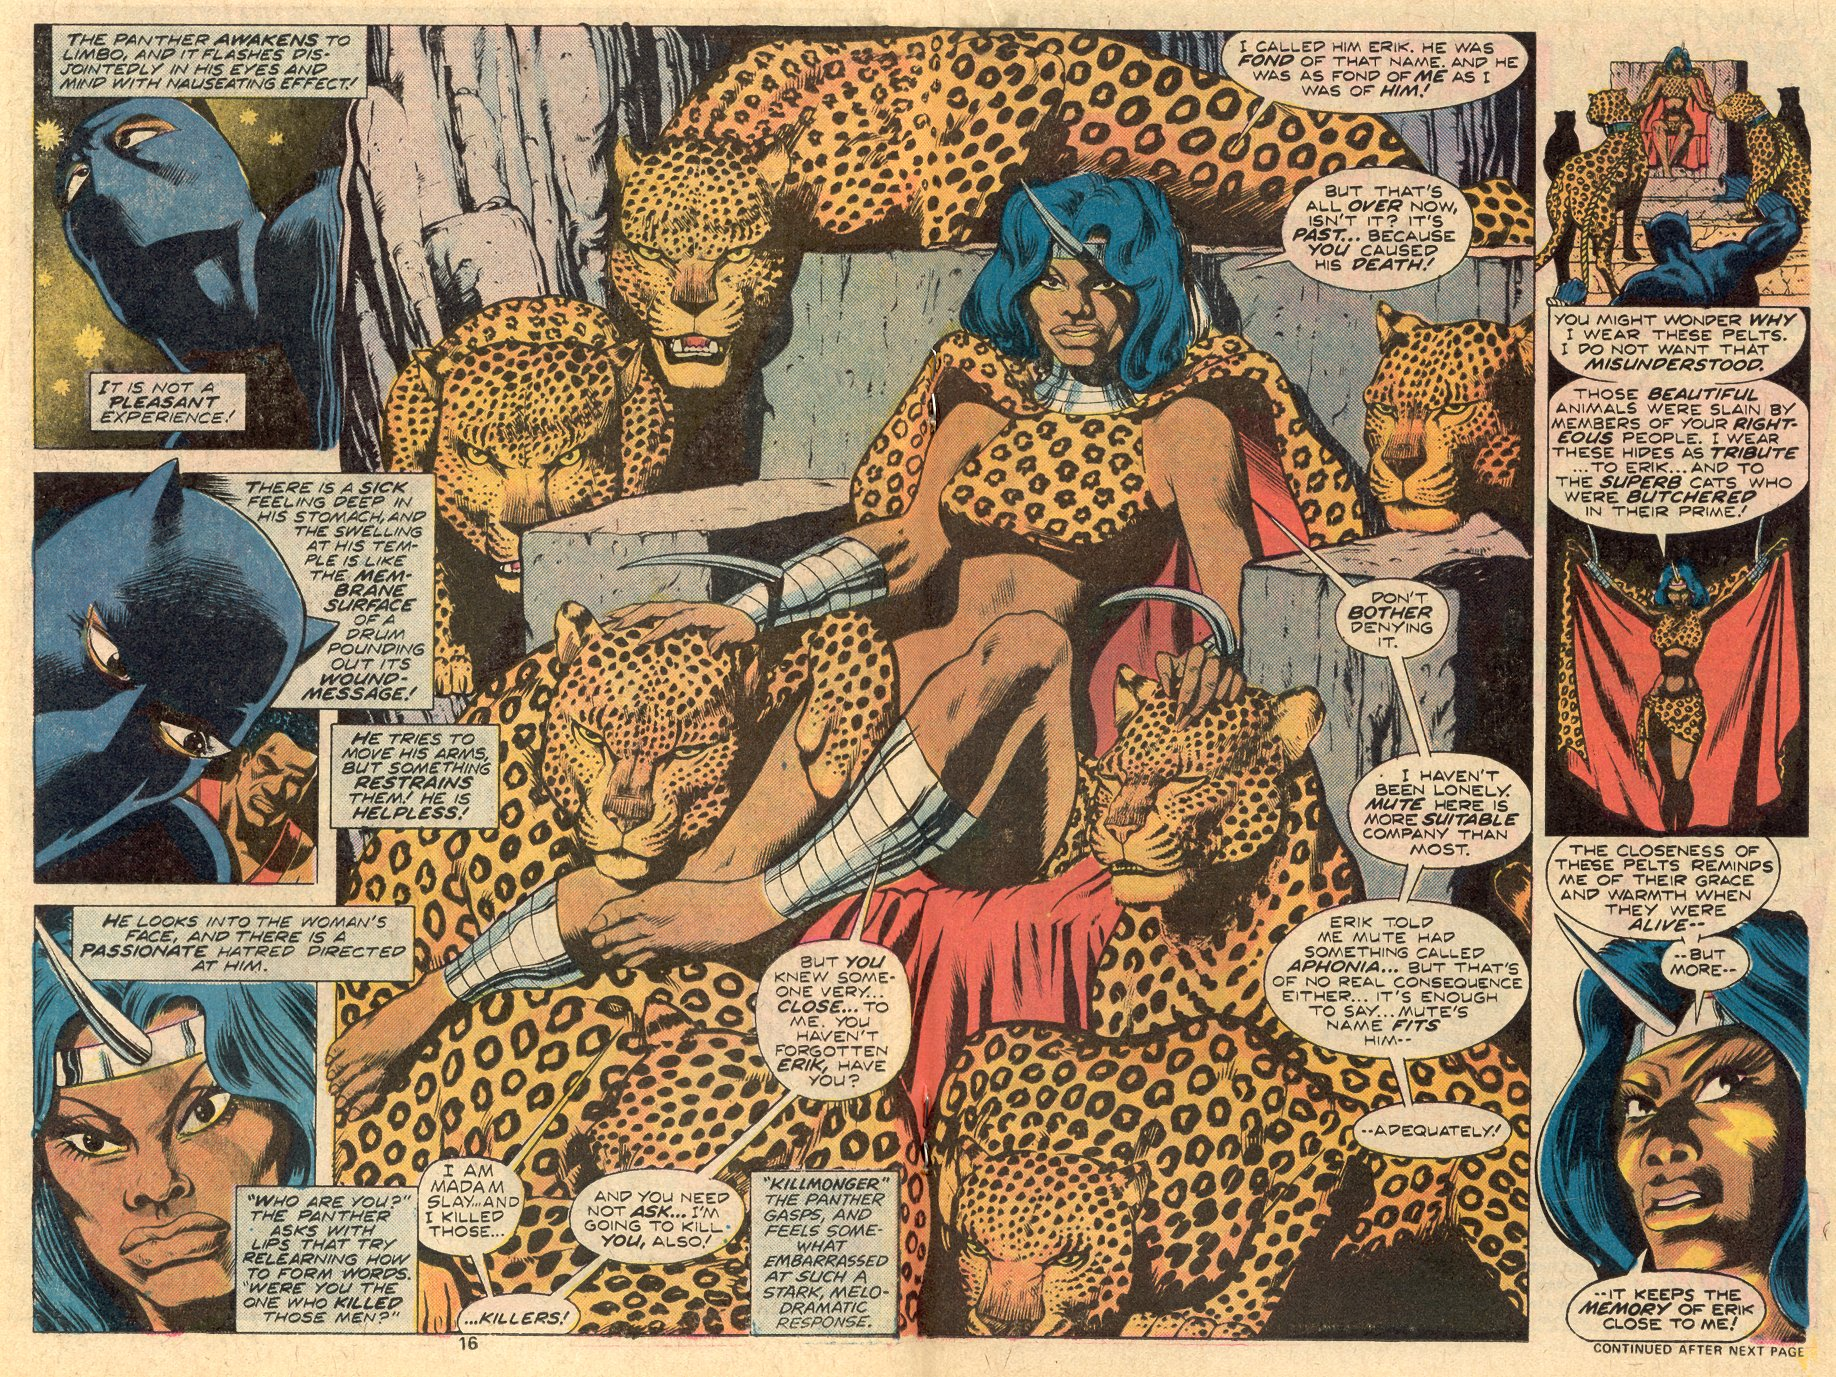 Leopard man goes to chocolate city 10